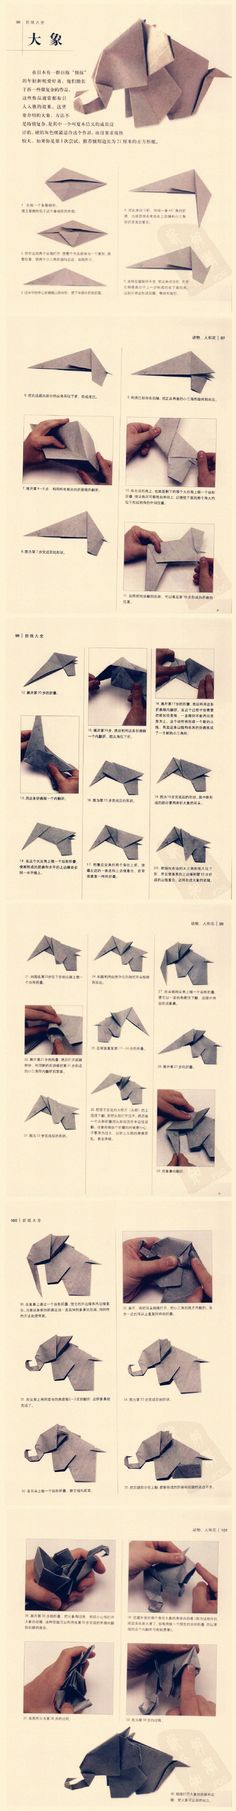 origami elephant directions